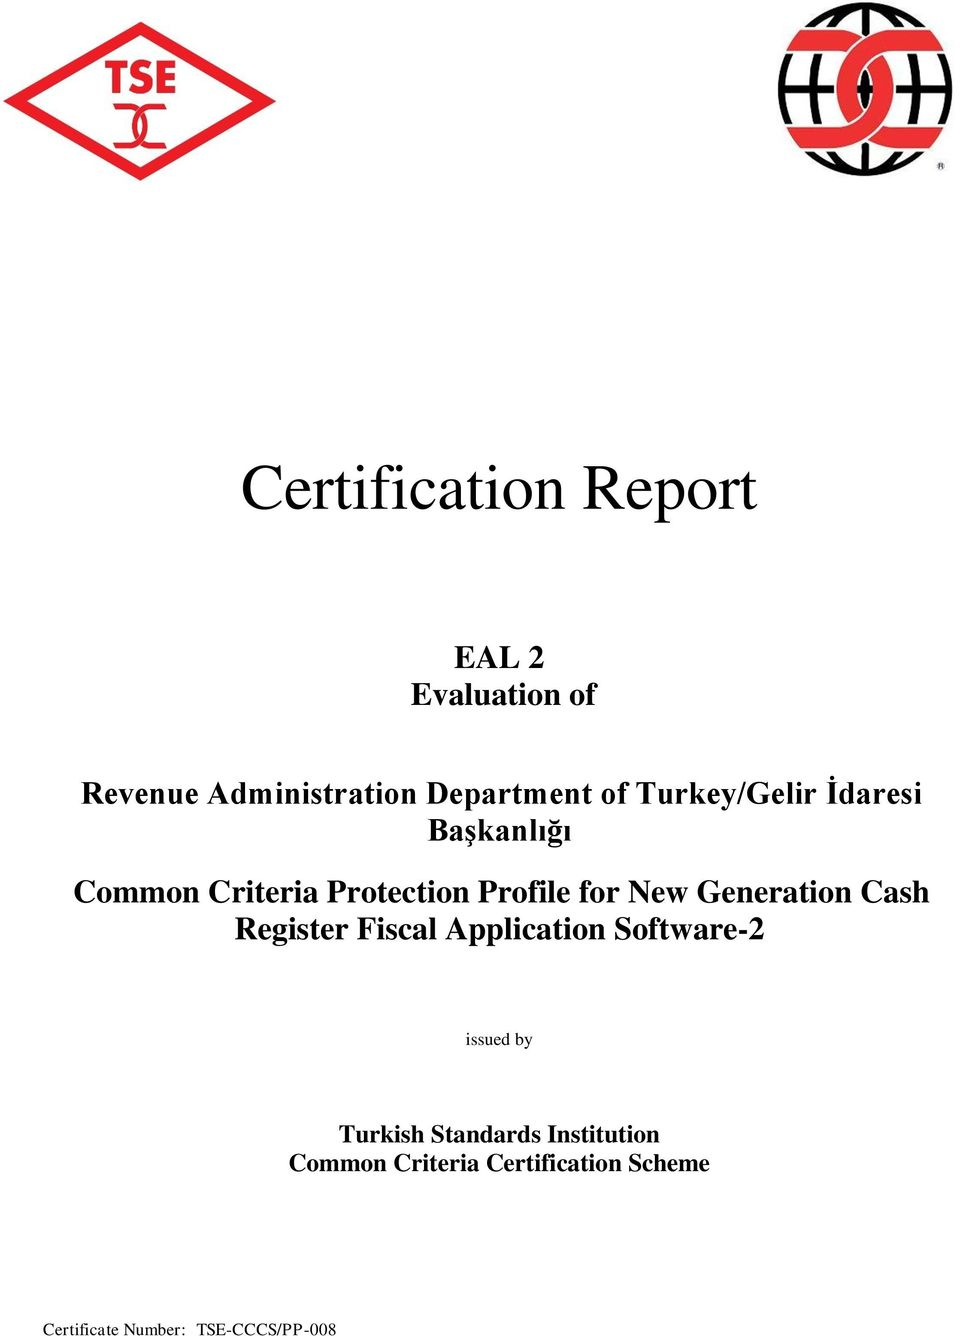 Generation Cash Register Fiscal Application Software-2 issued by Turkish